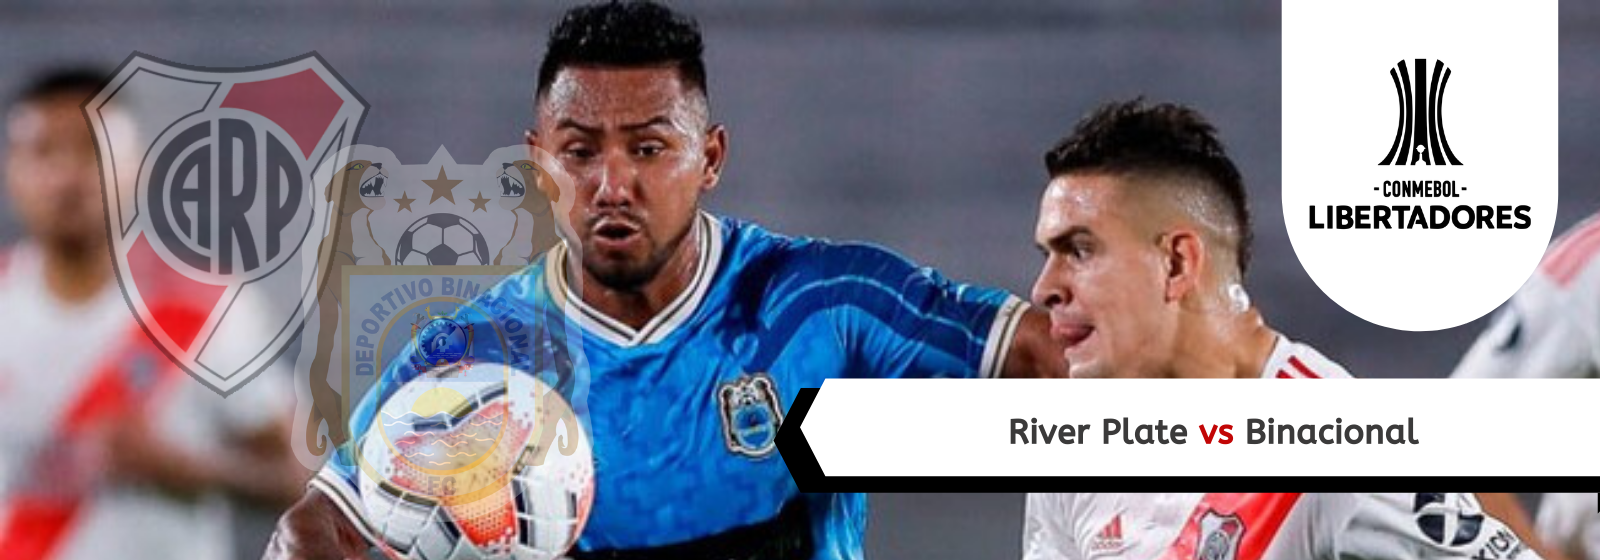 Asianconnect: River Plate (Argentina) vs Binacional (Peru) Odds for March 11, 2020